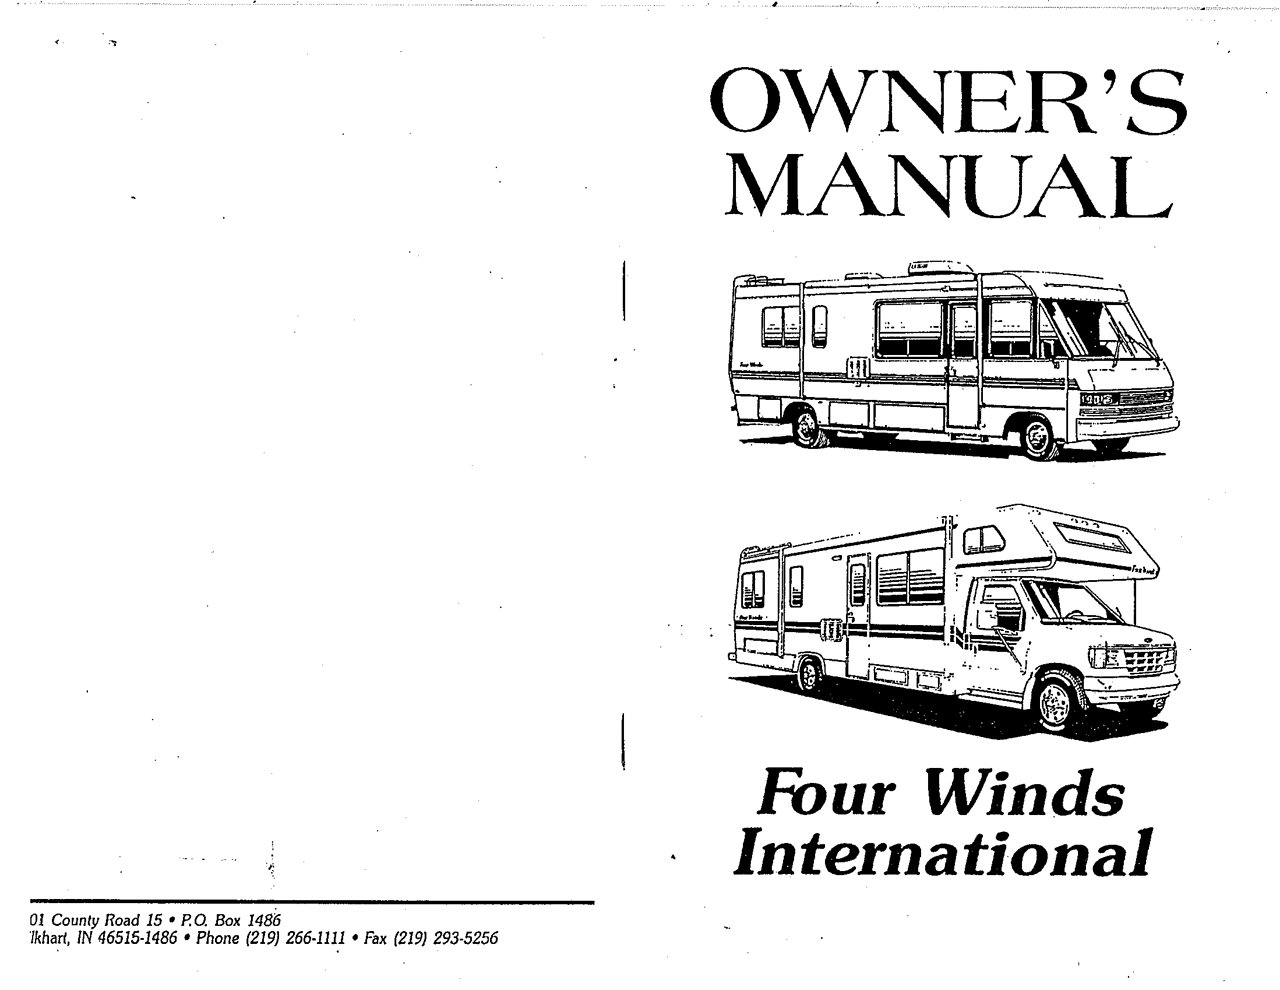 thor hurricane owners manual ebook rh thor hurricane owners manual ebook  bitlab sol 886. International Tractor Tractor International 4788